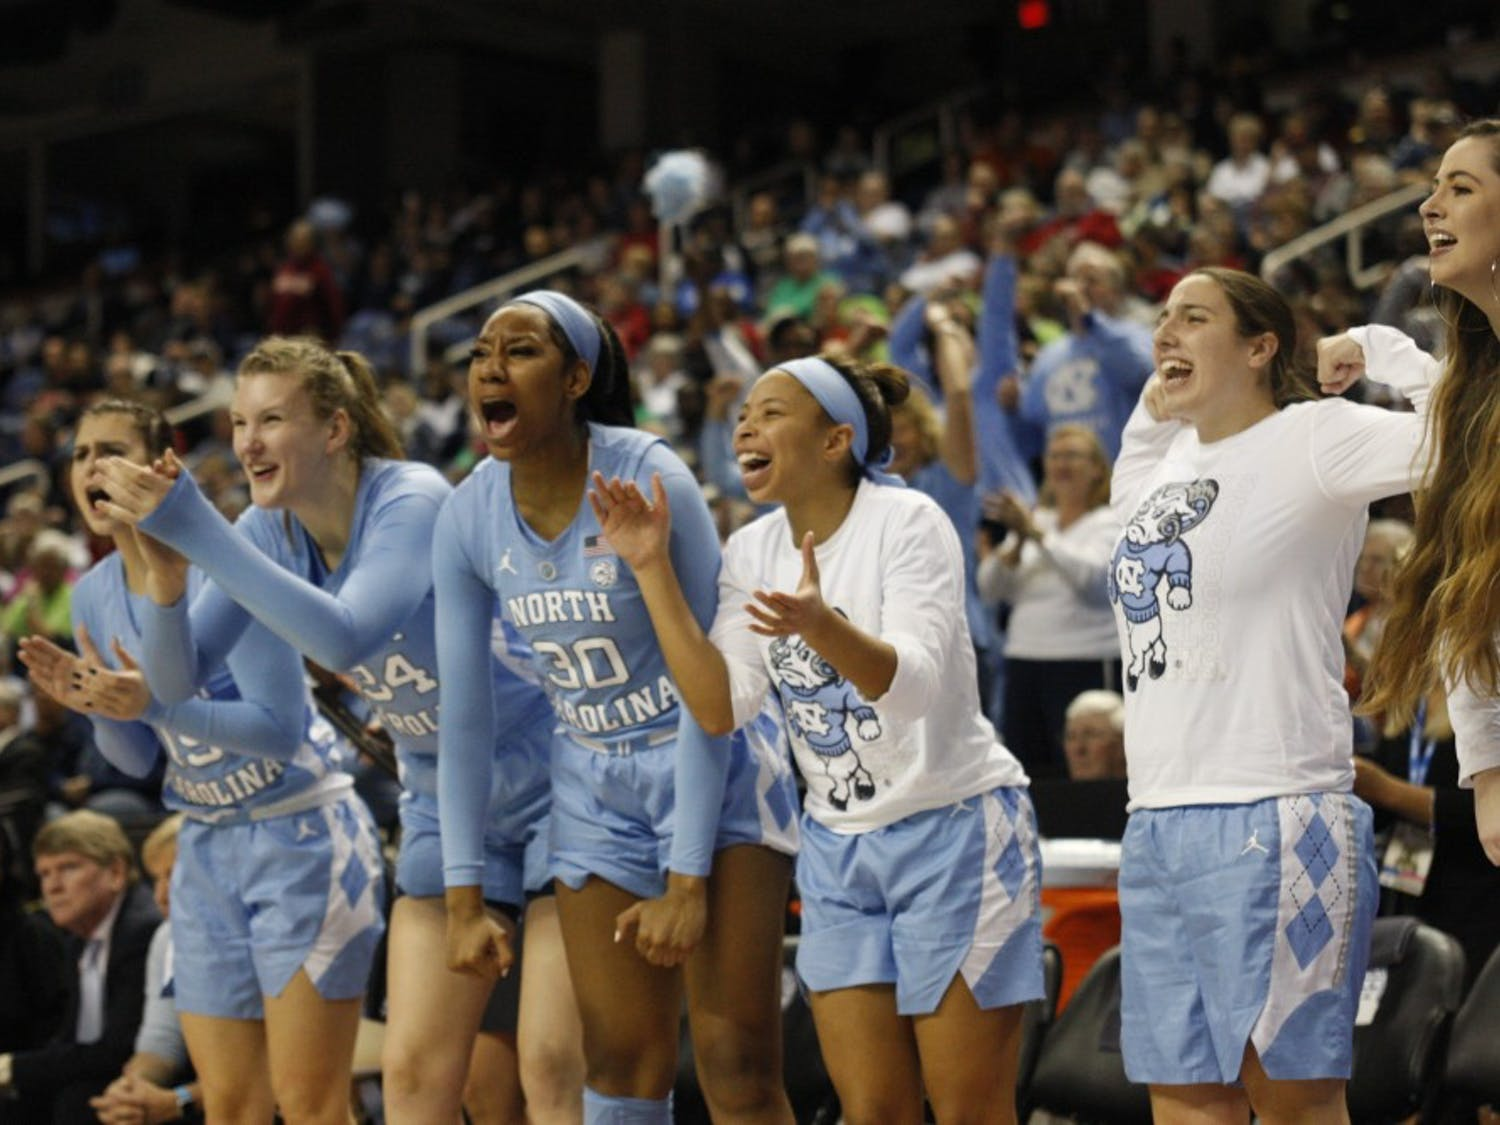 UNC women's basketball players cheer on their teammates from the bench during the second round of the ACC Tournament in Greensboro, N.C. on Friday, March 8, 2019. UNC lost to Notre Dame 95-77.